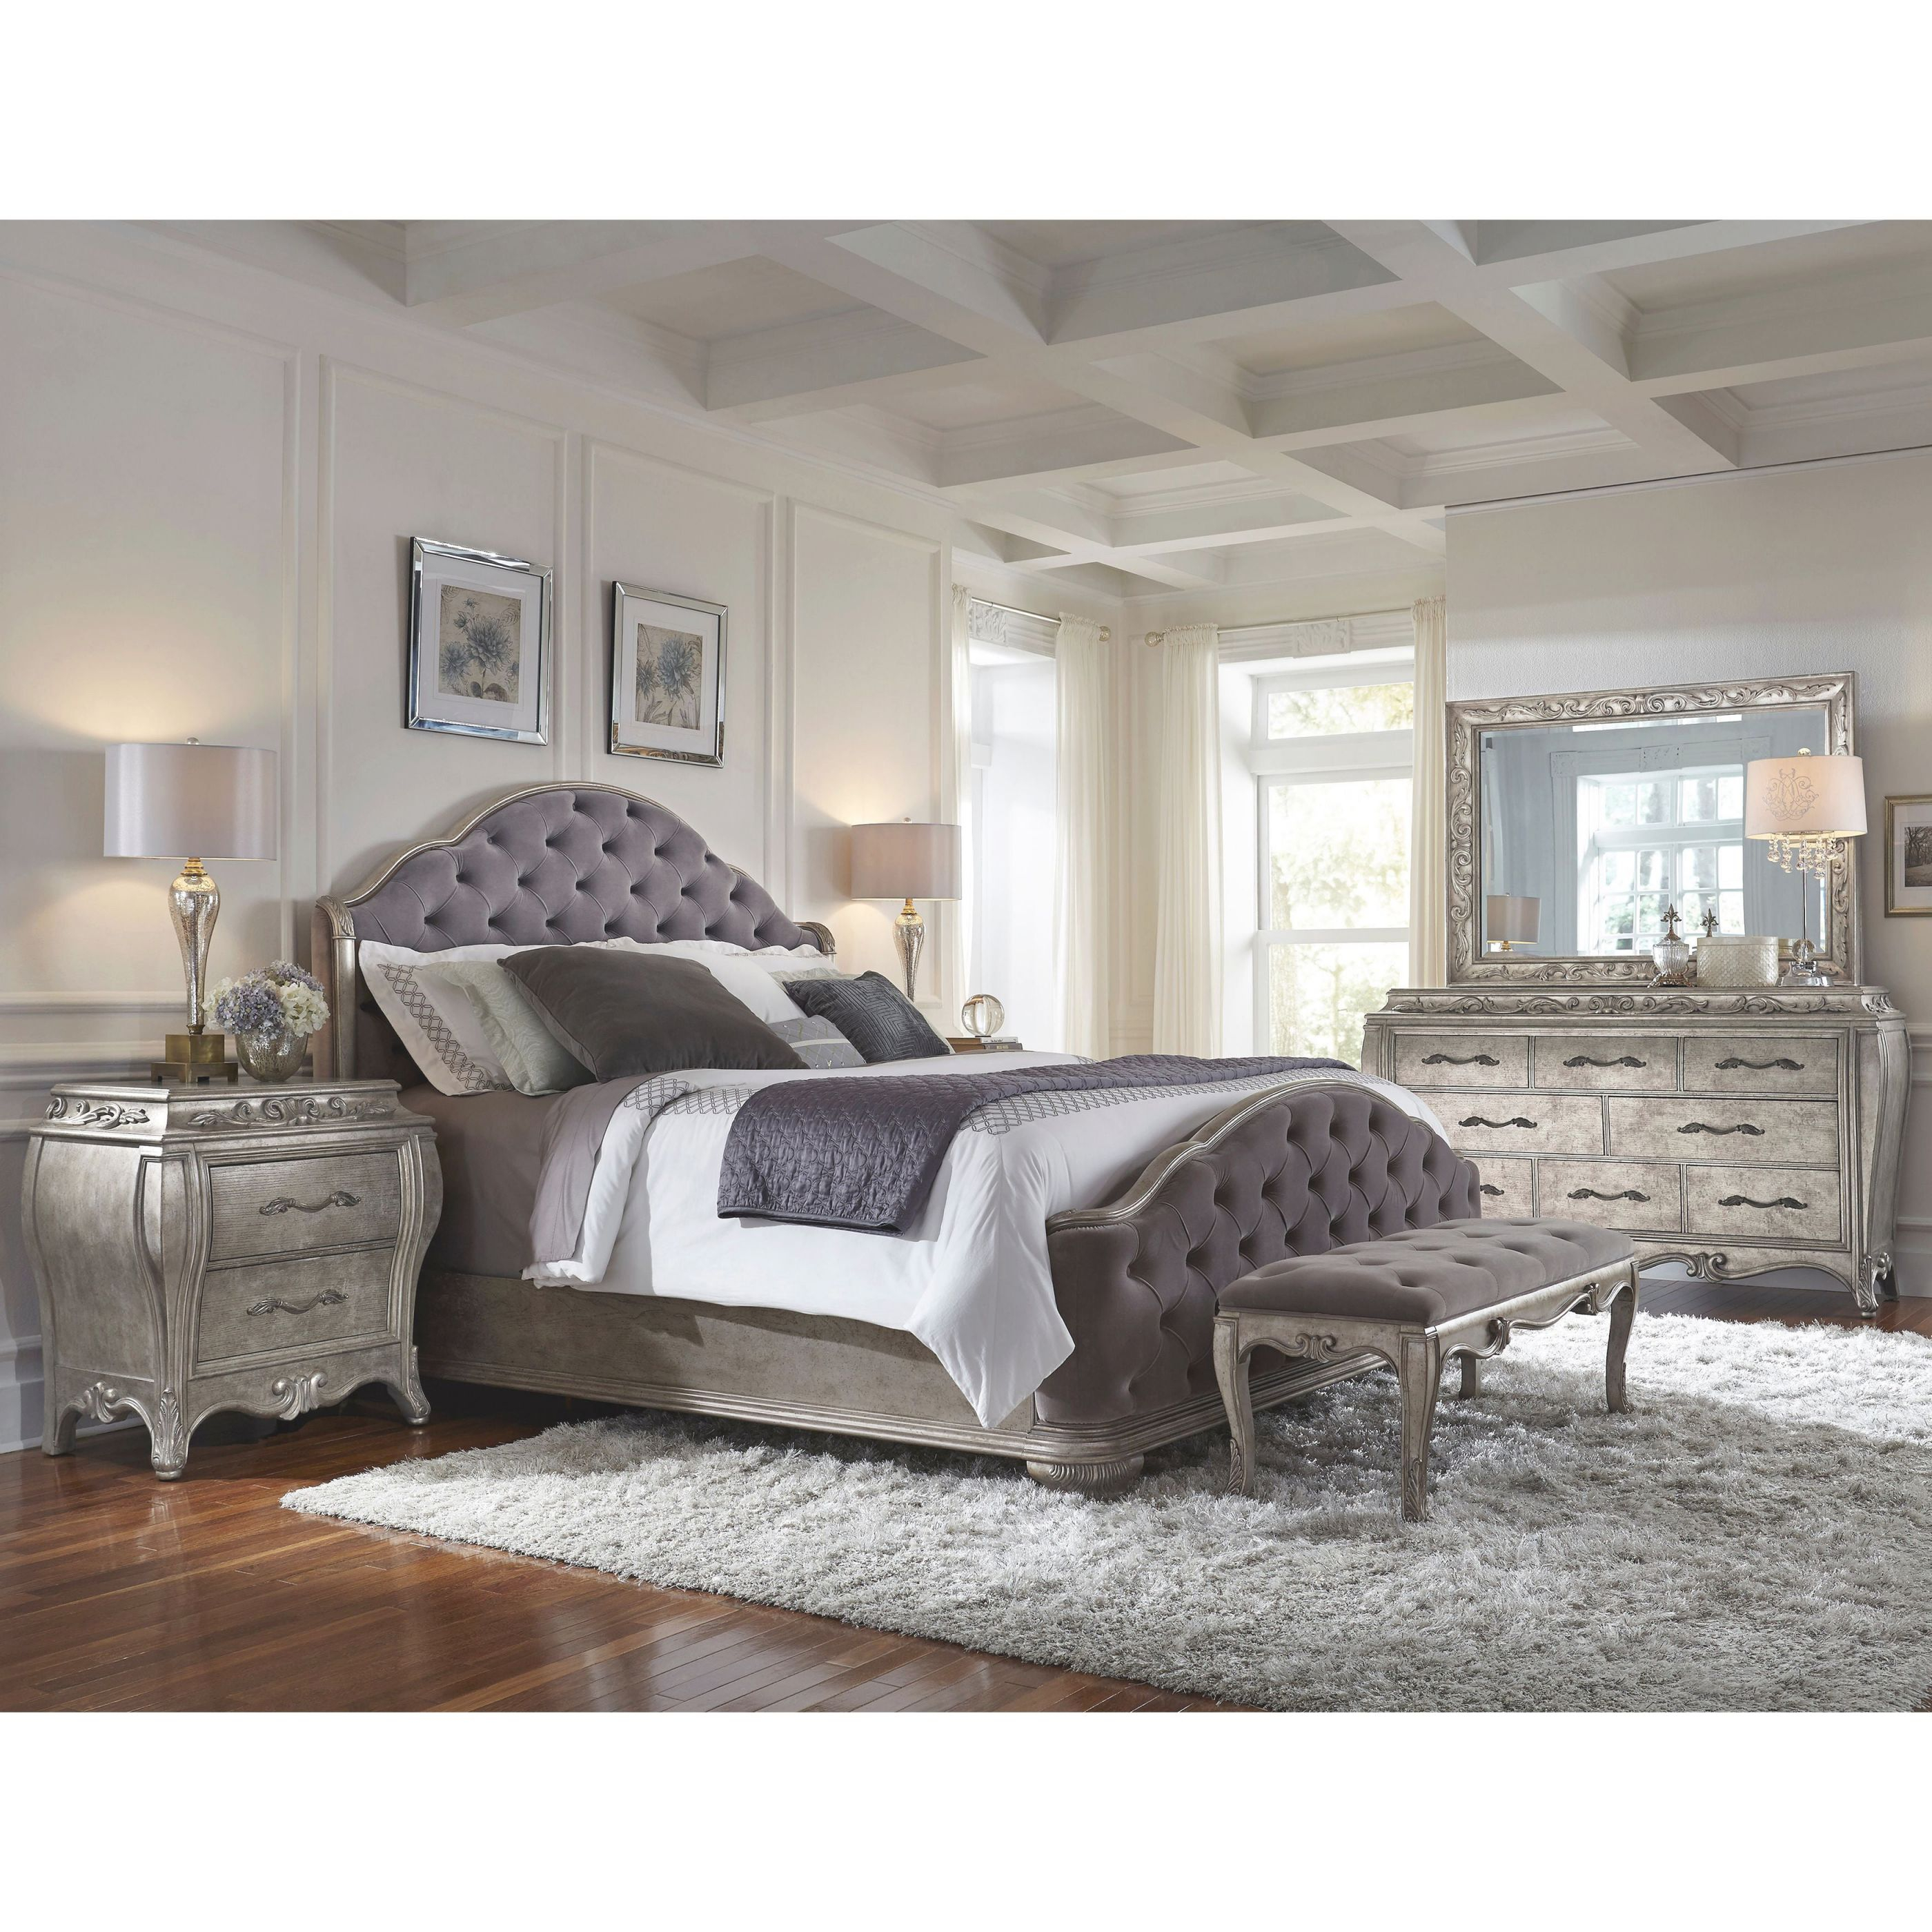 Bedroom Design : Cheap King Size Sets Near Me Set Deals pertaining to Luxury Bedroom Sets King